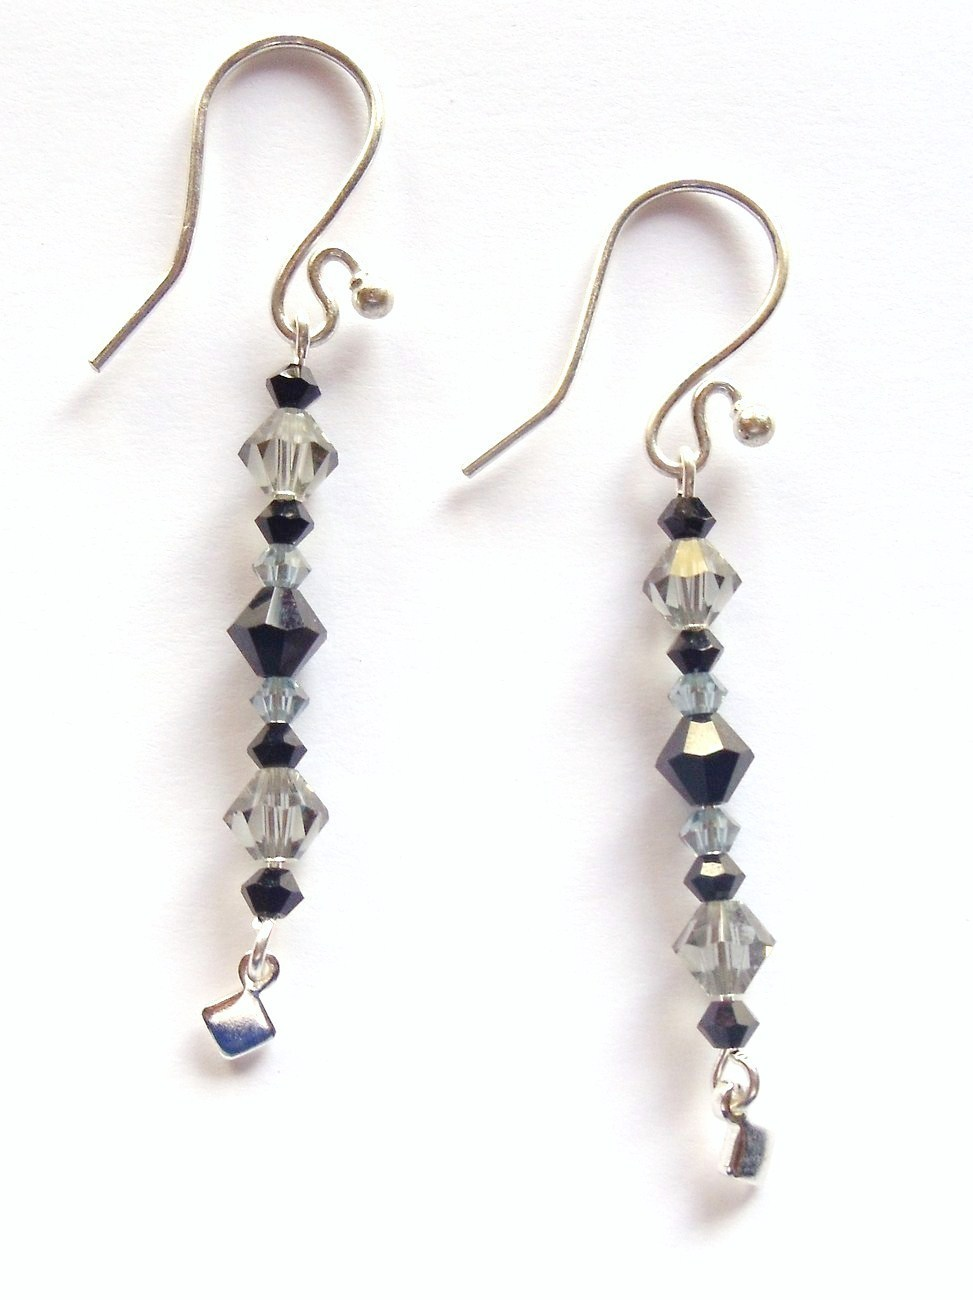 GENUINE Swarovski Black and Crystal Frenchback Earrings